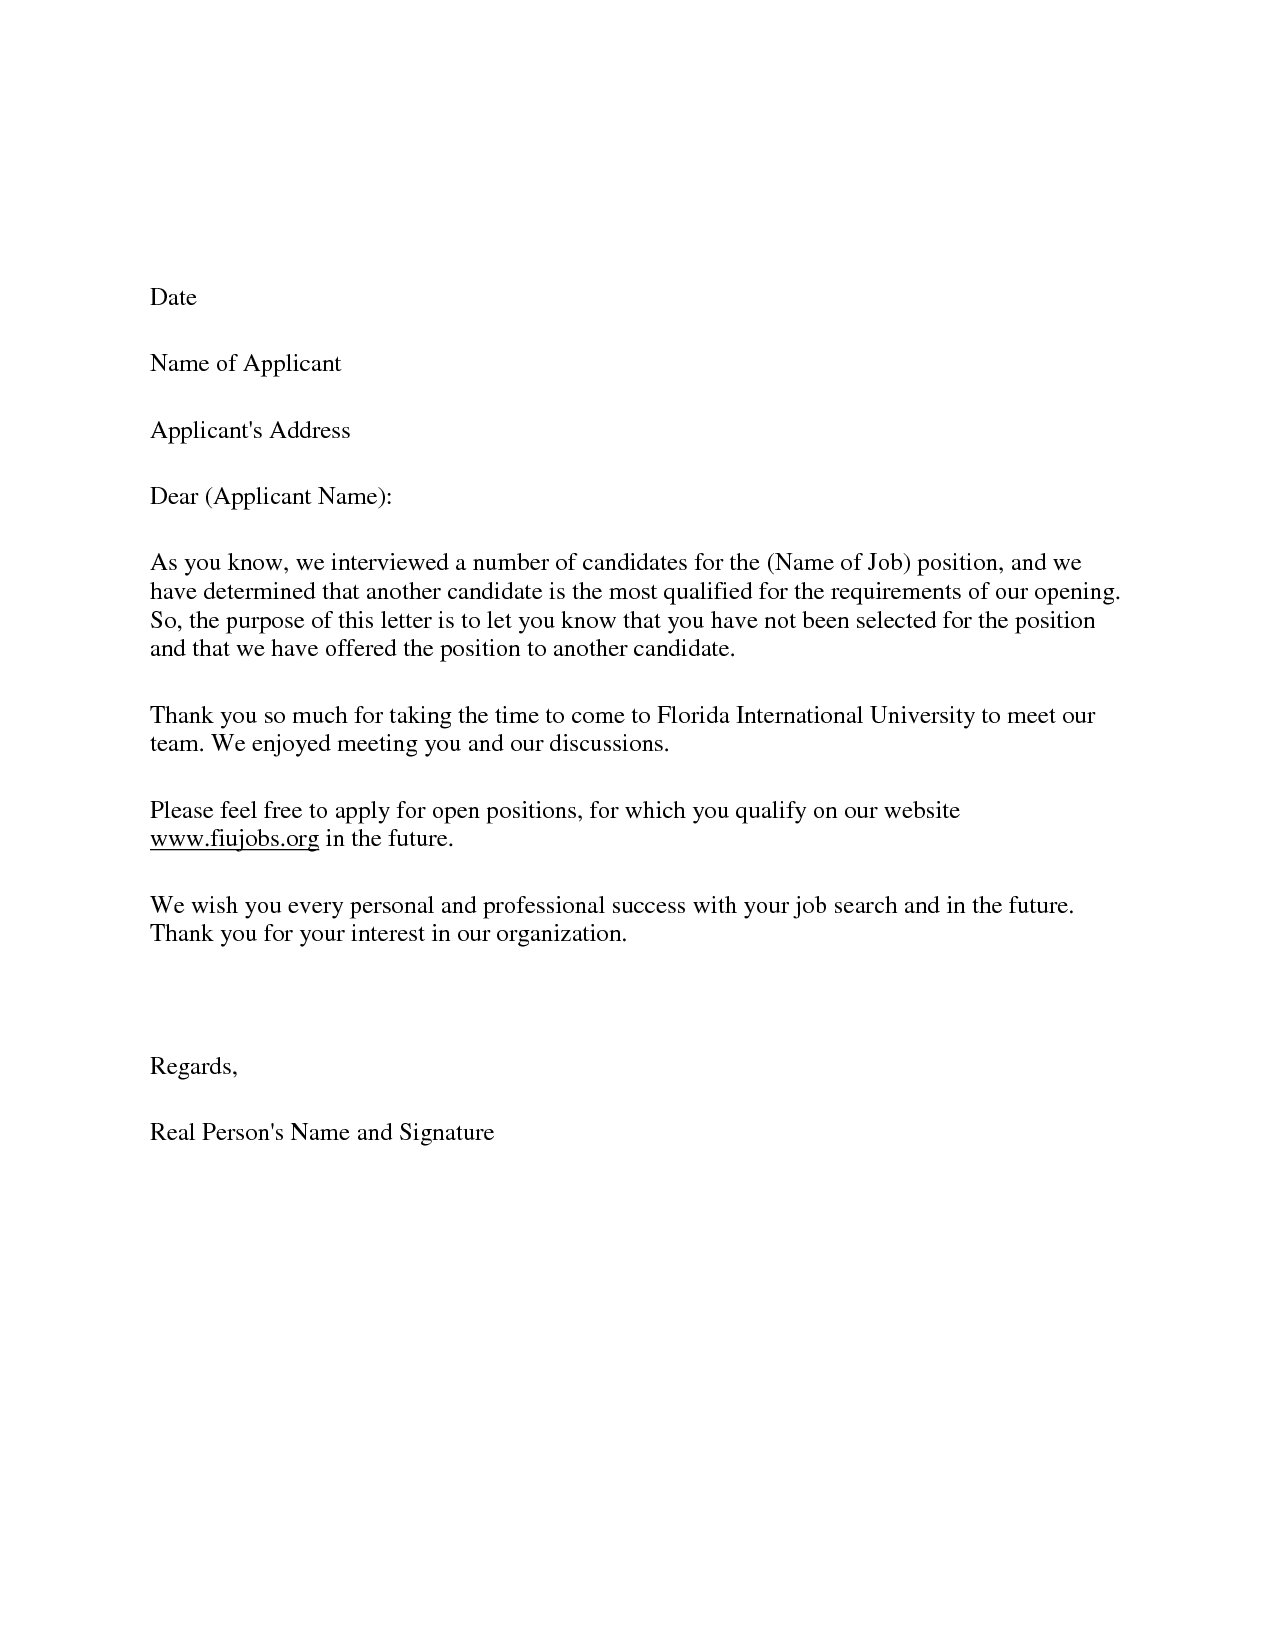 Candidate Decline Letter Employers of choice send rejection – Rejection Letter Sample